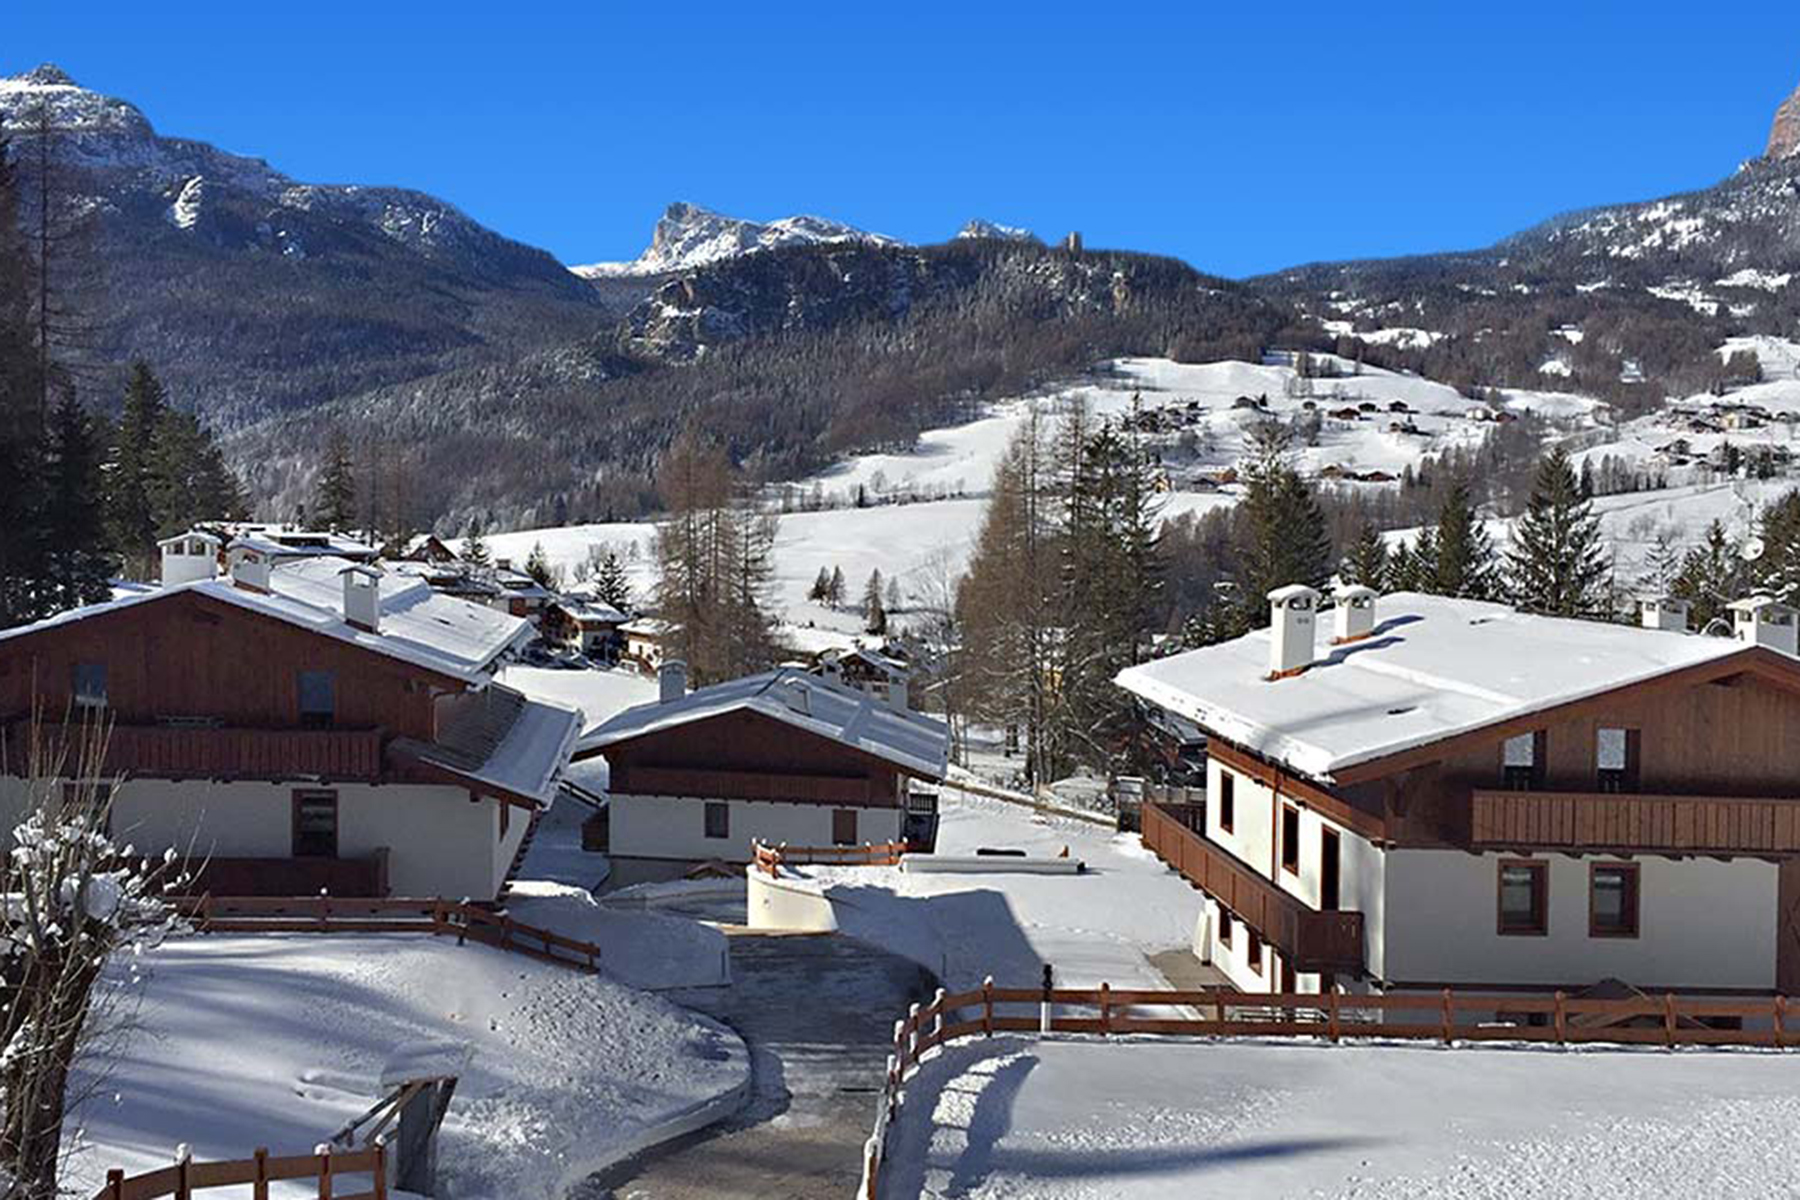 Single Family Home for Sale at Luxury chalet in Cortina d'Ampezzo Cortina D'Ampezzo, Belluno Italy